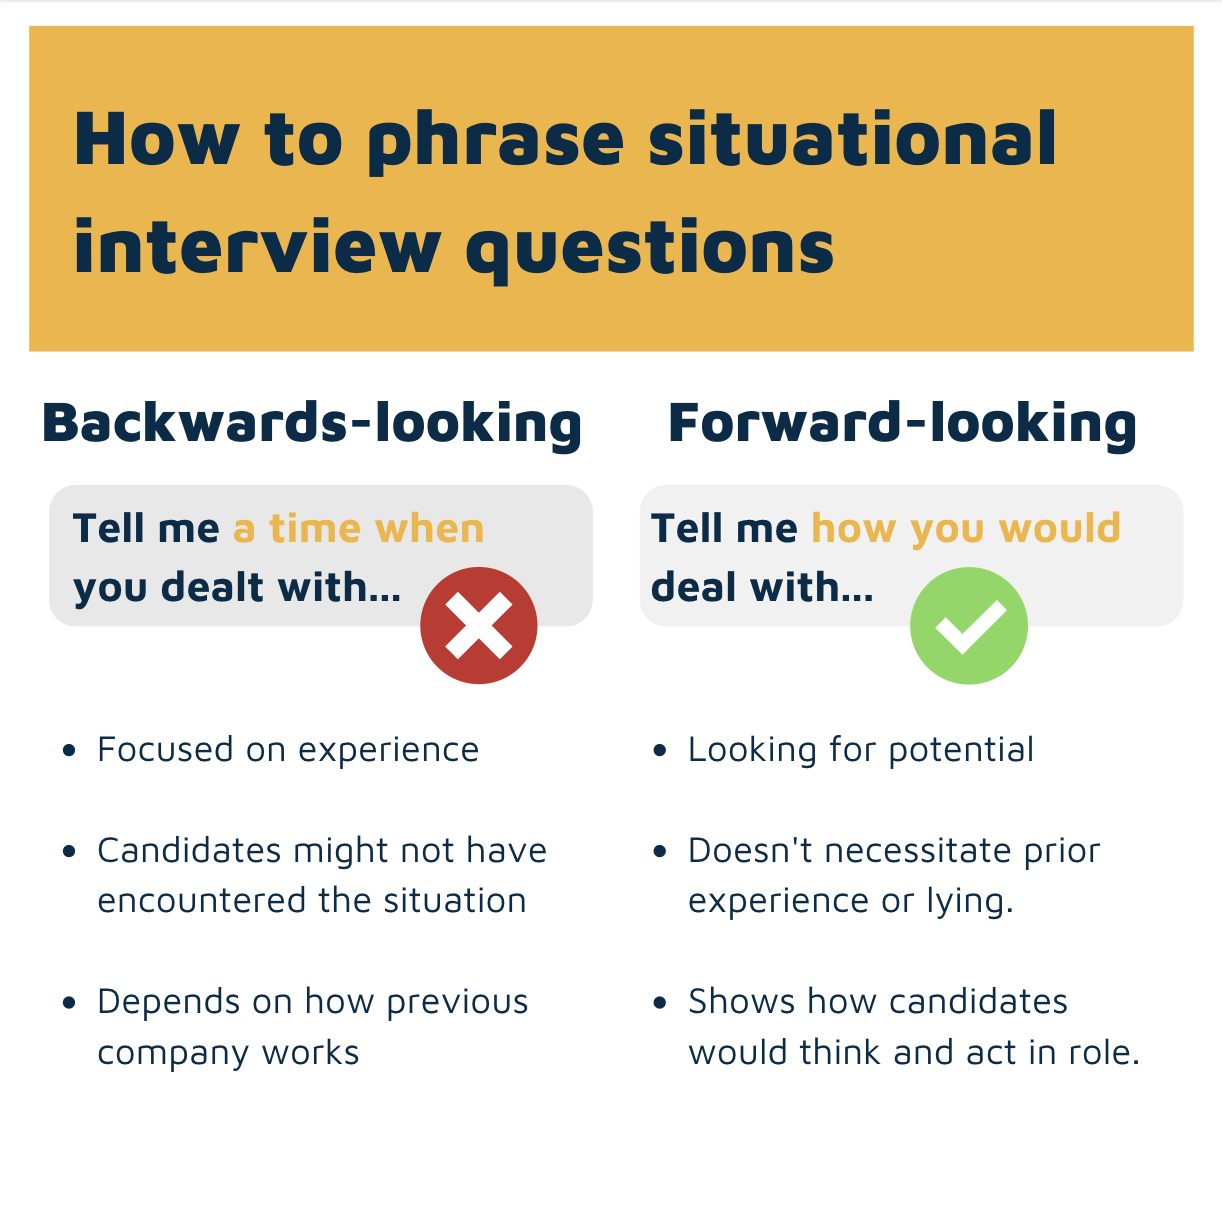 Backwards-looking vs Forward-looking interview questions